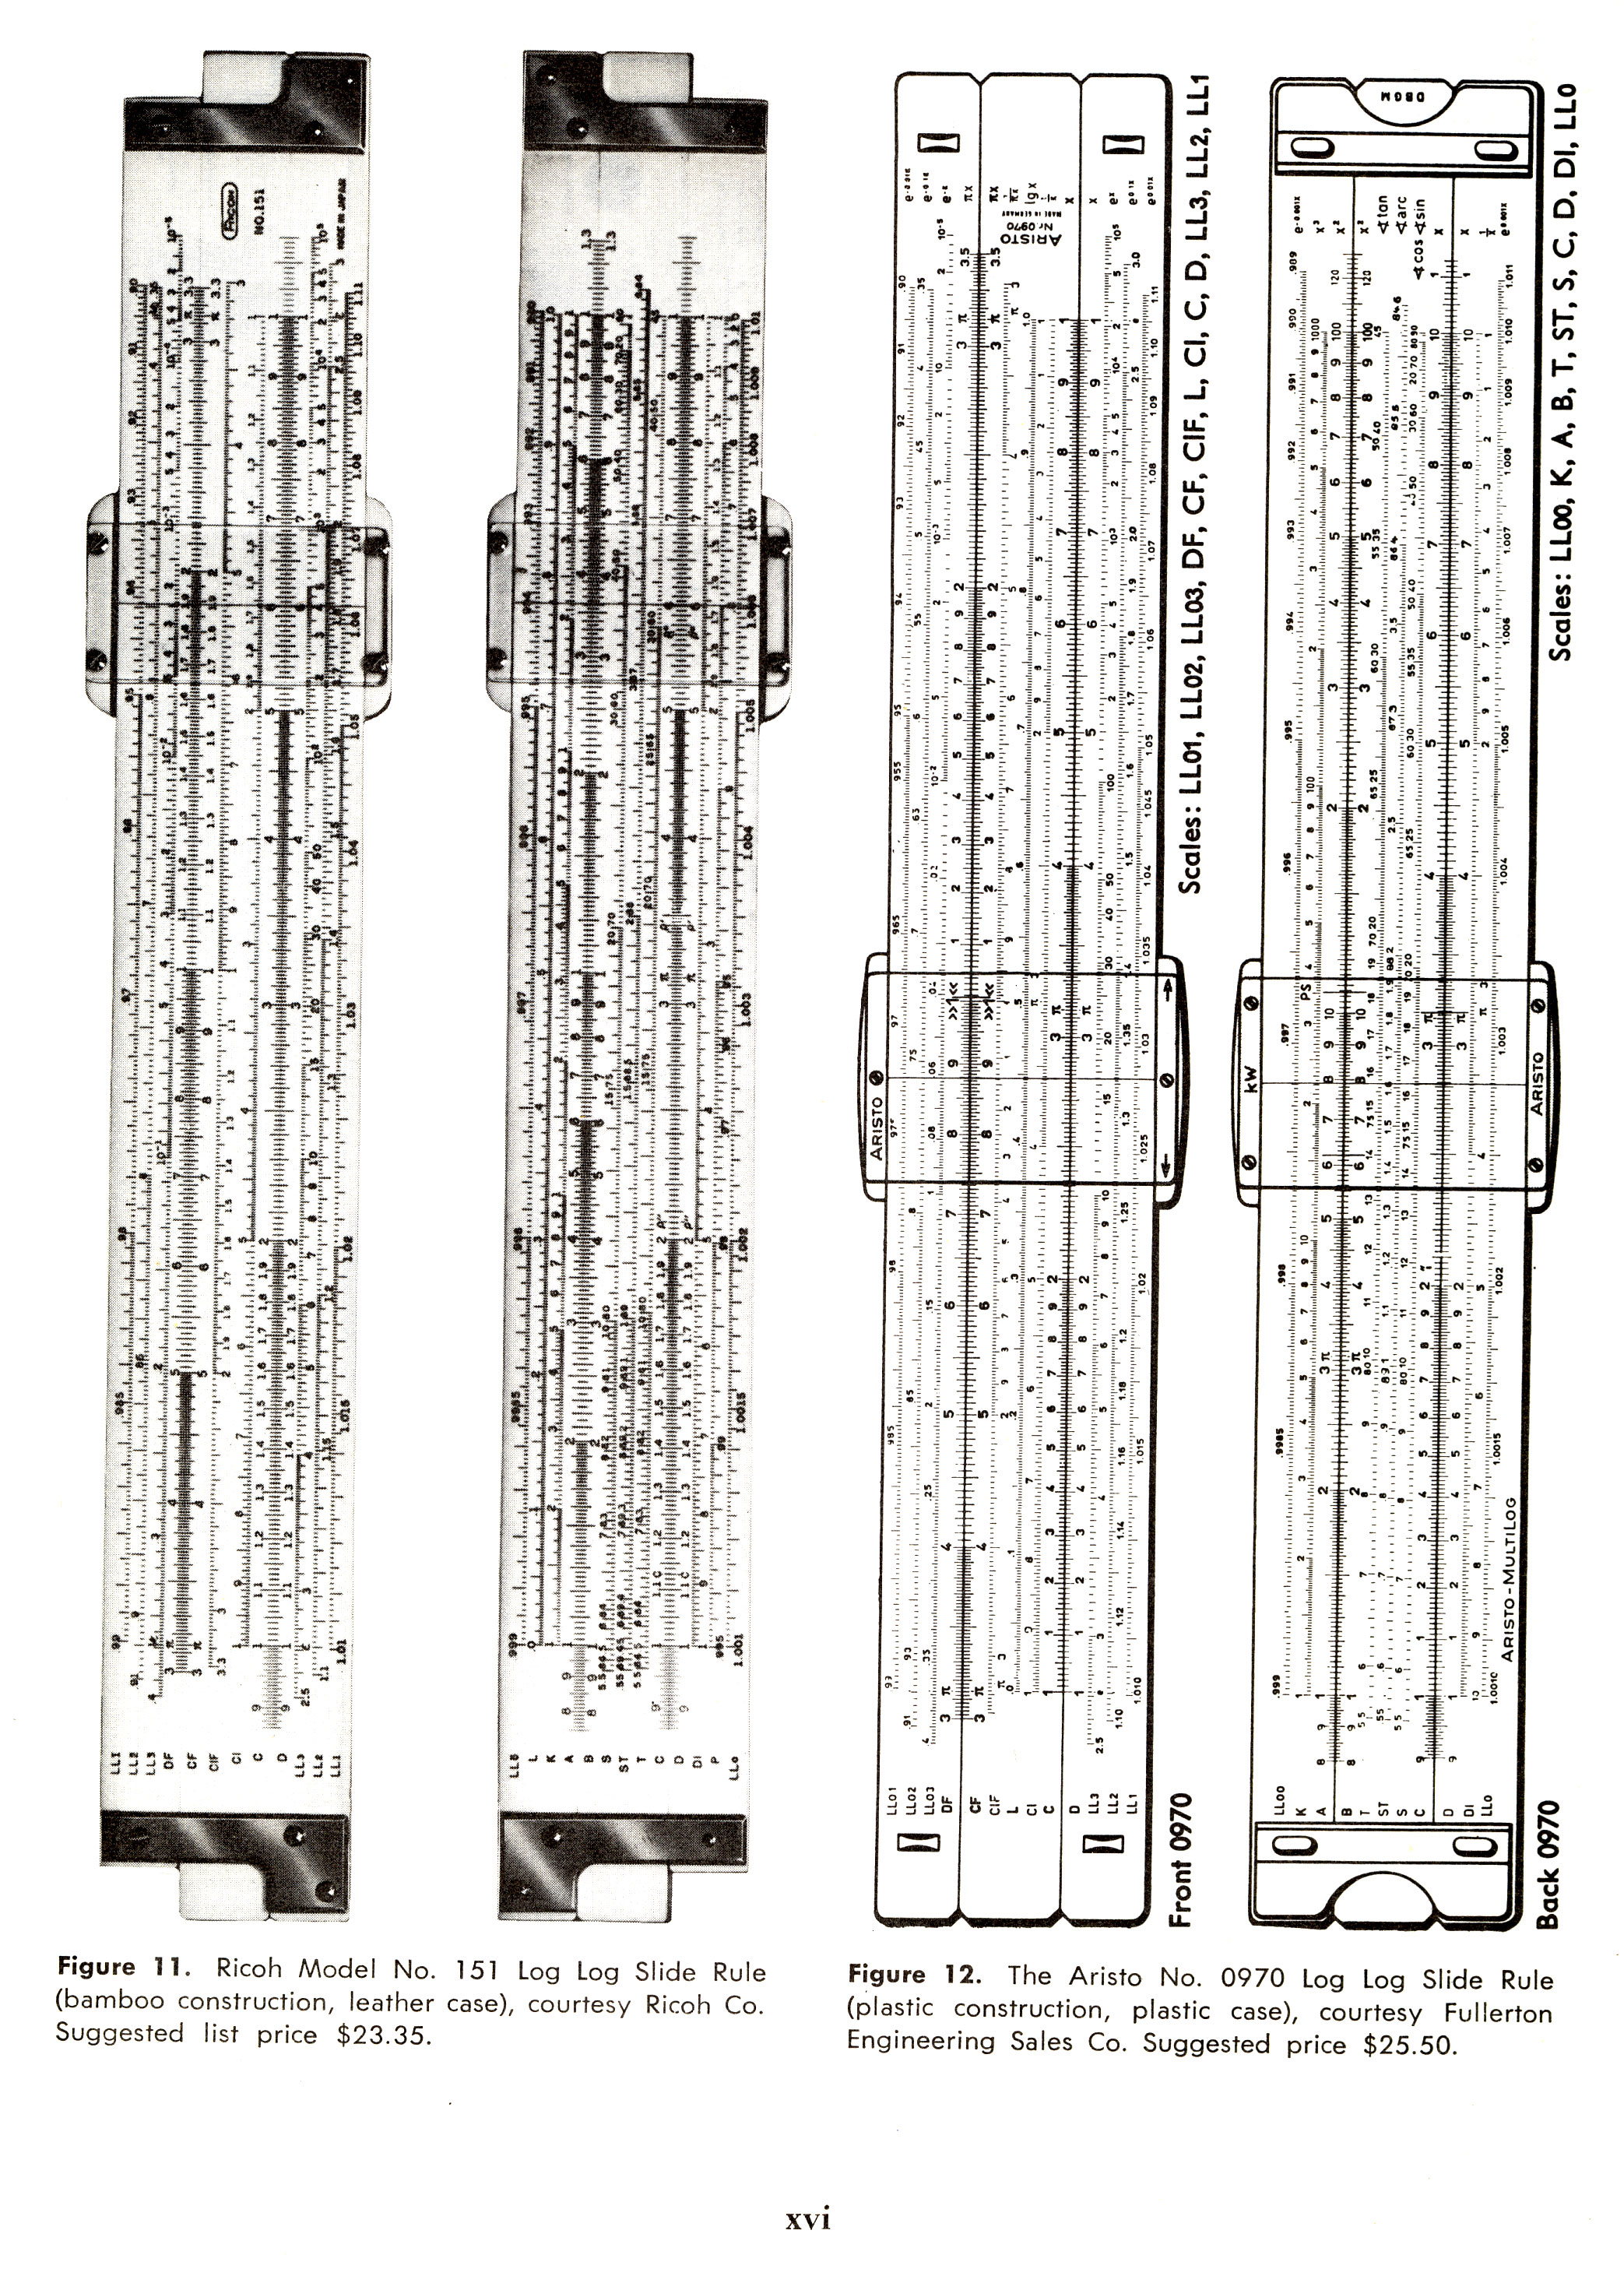 sliderules 5 Slide Rules